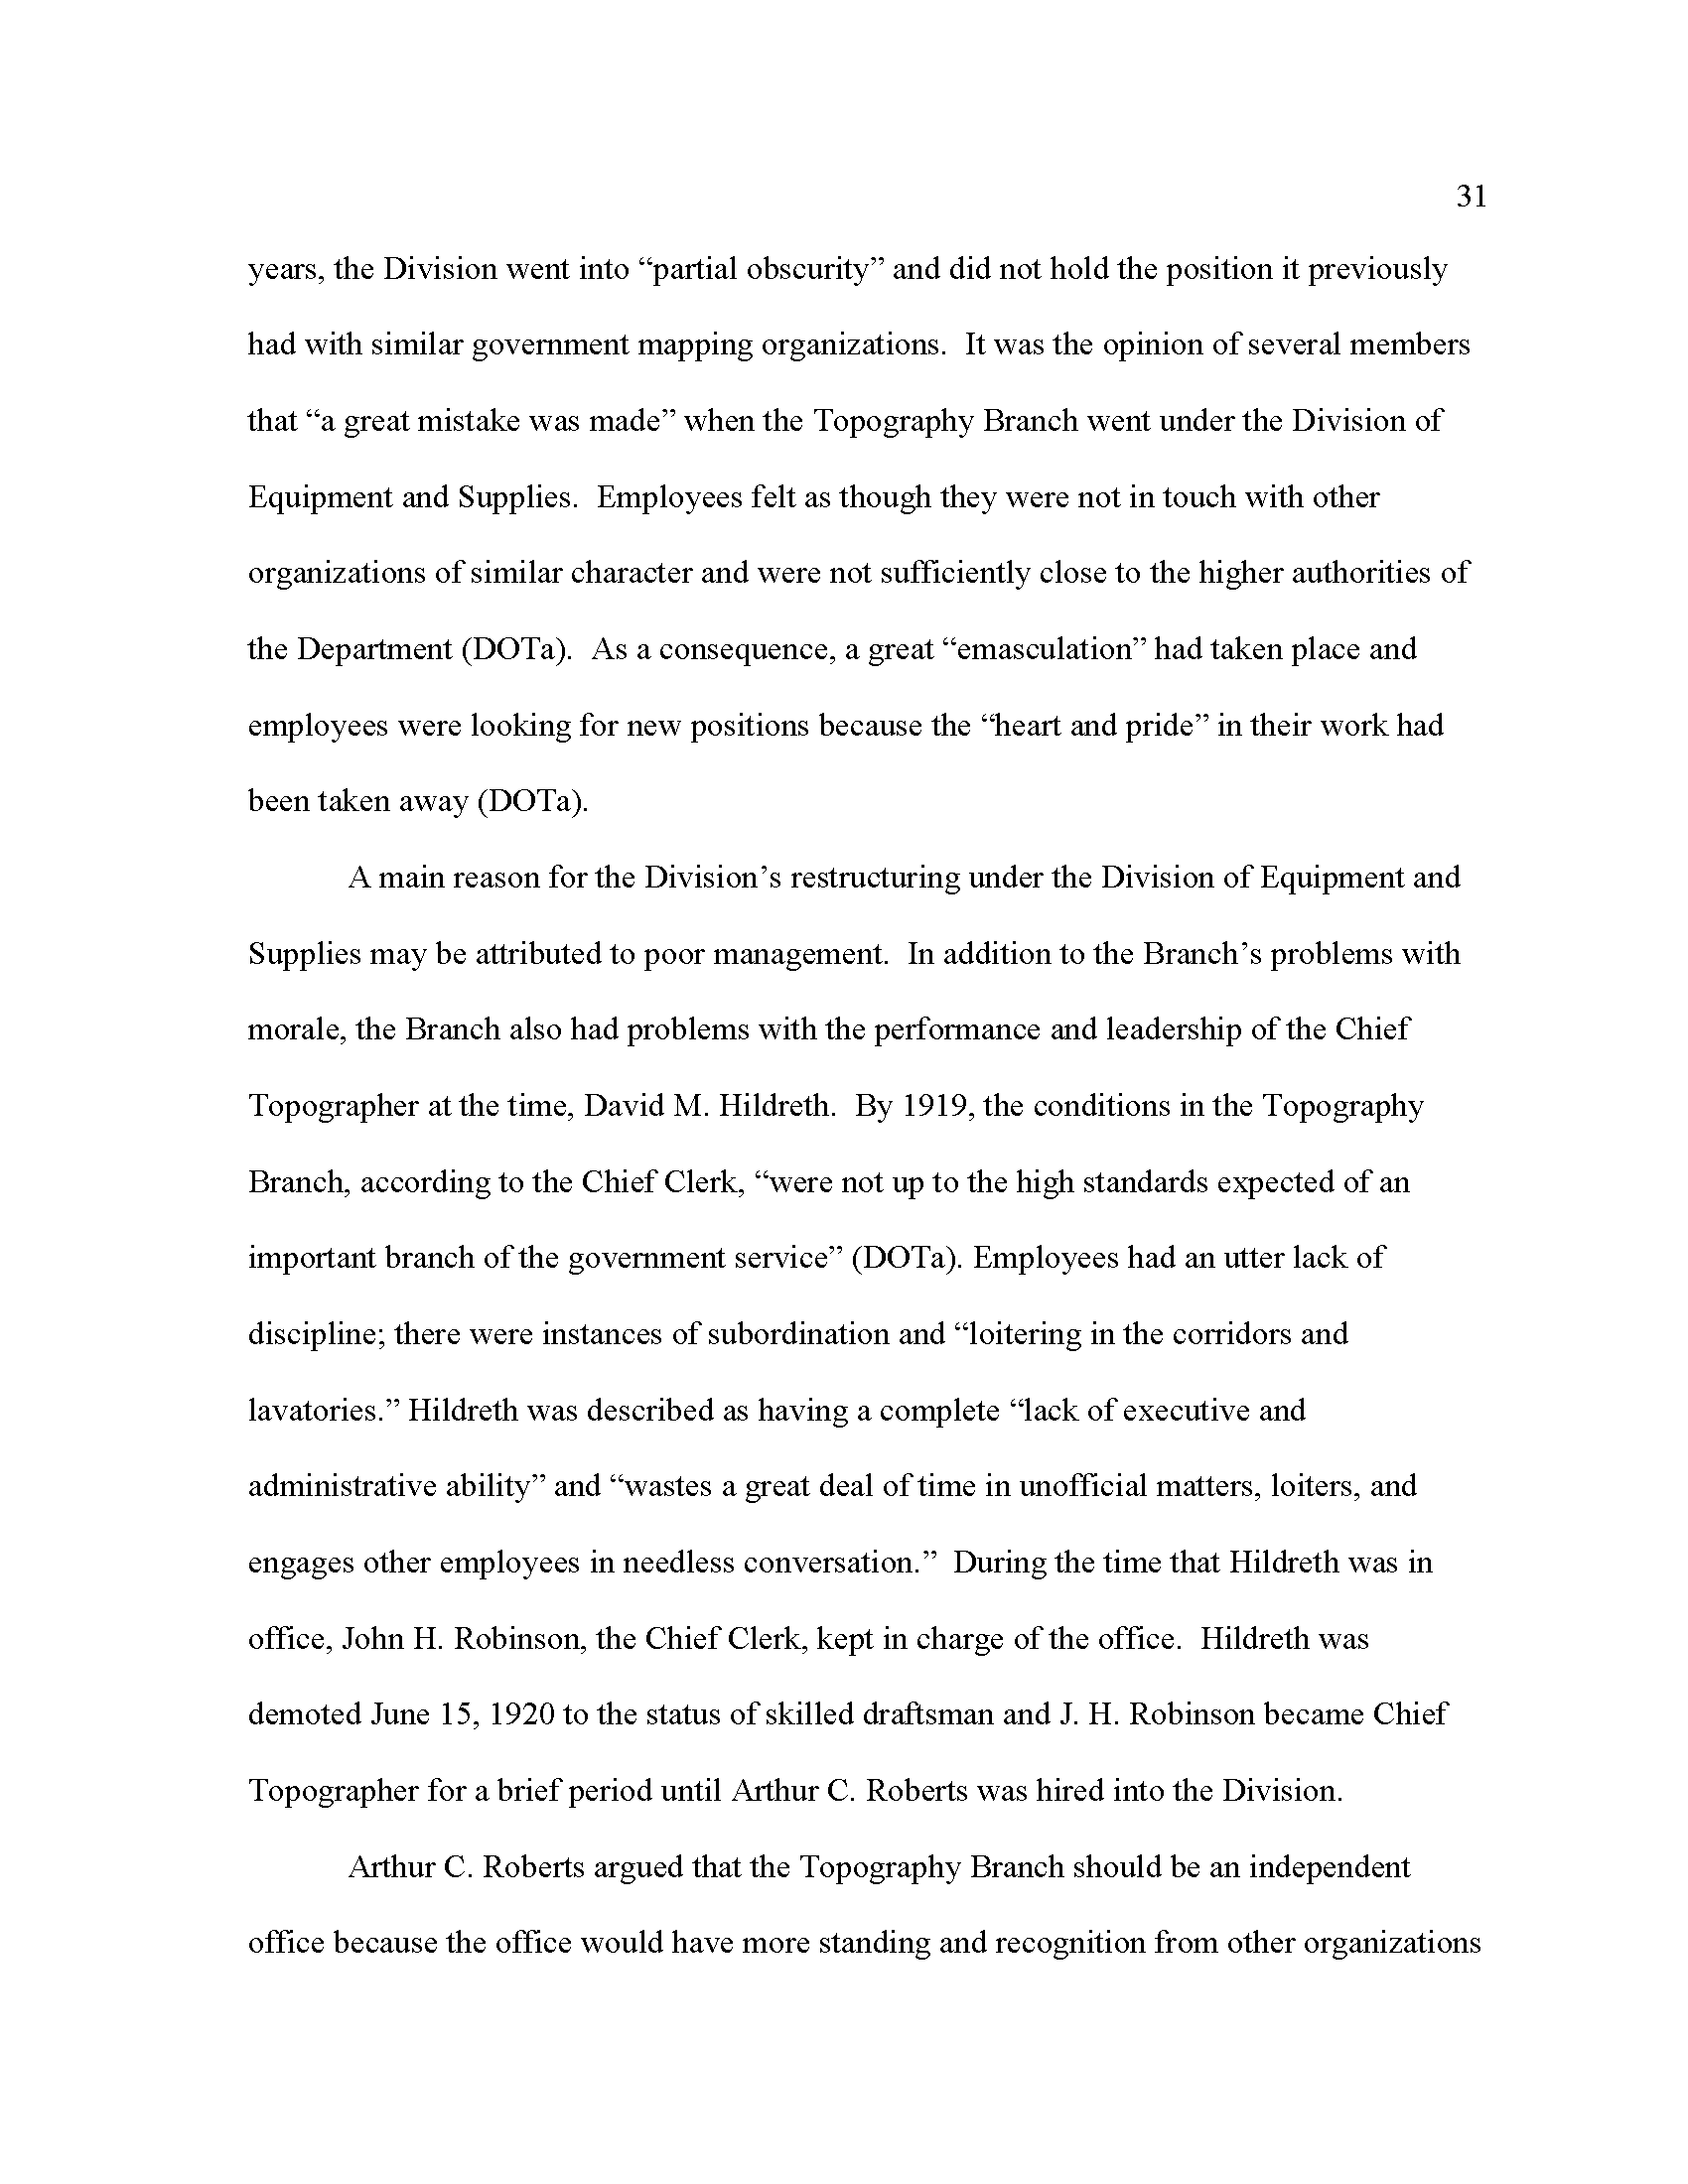 Thesis Final_Page_035.png